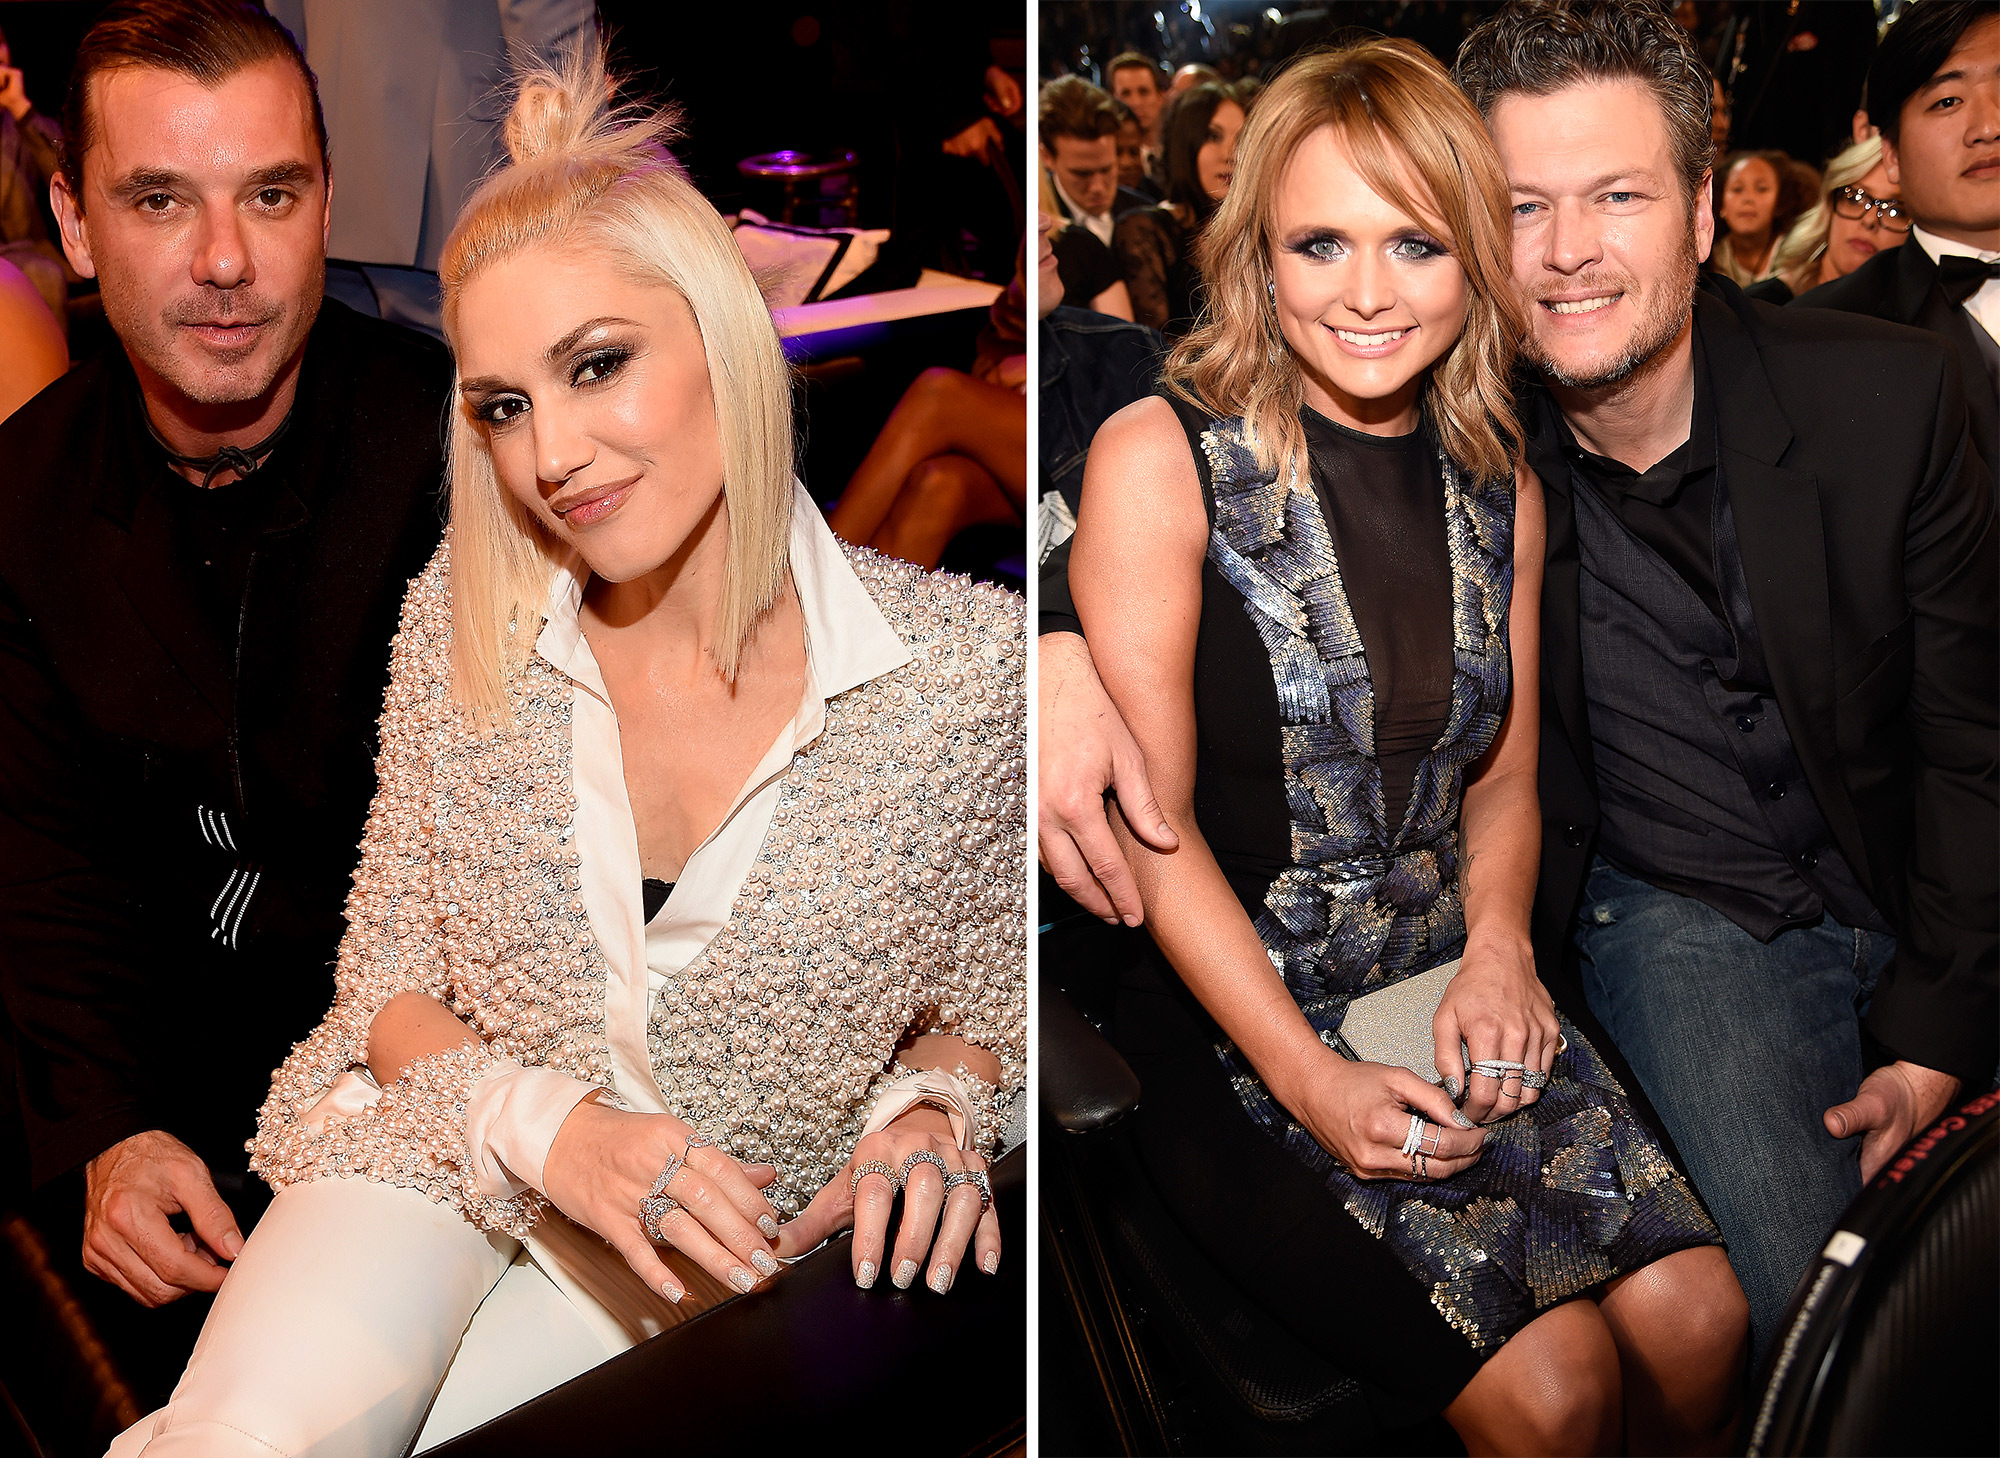 Blake Shelton Gwen Stefani Gavin Rossdale Miranda Lambert - Stefani and Shelton split from their respective spouses, Gavin Rossdale and Miranda Lambert, within two weeks of each other in July and August 2015. The country singer and Lambert shockingly announced July 20 that they were splitting after four years of marriage.